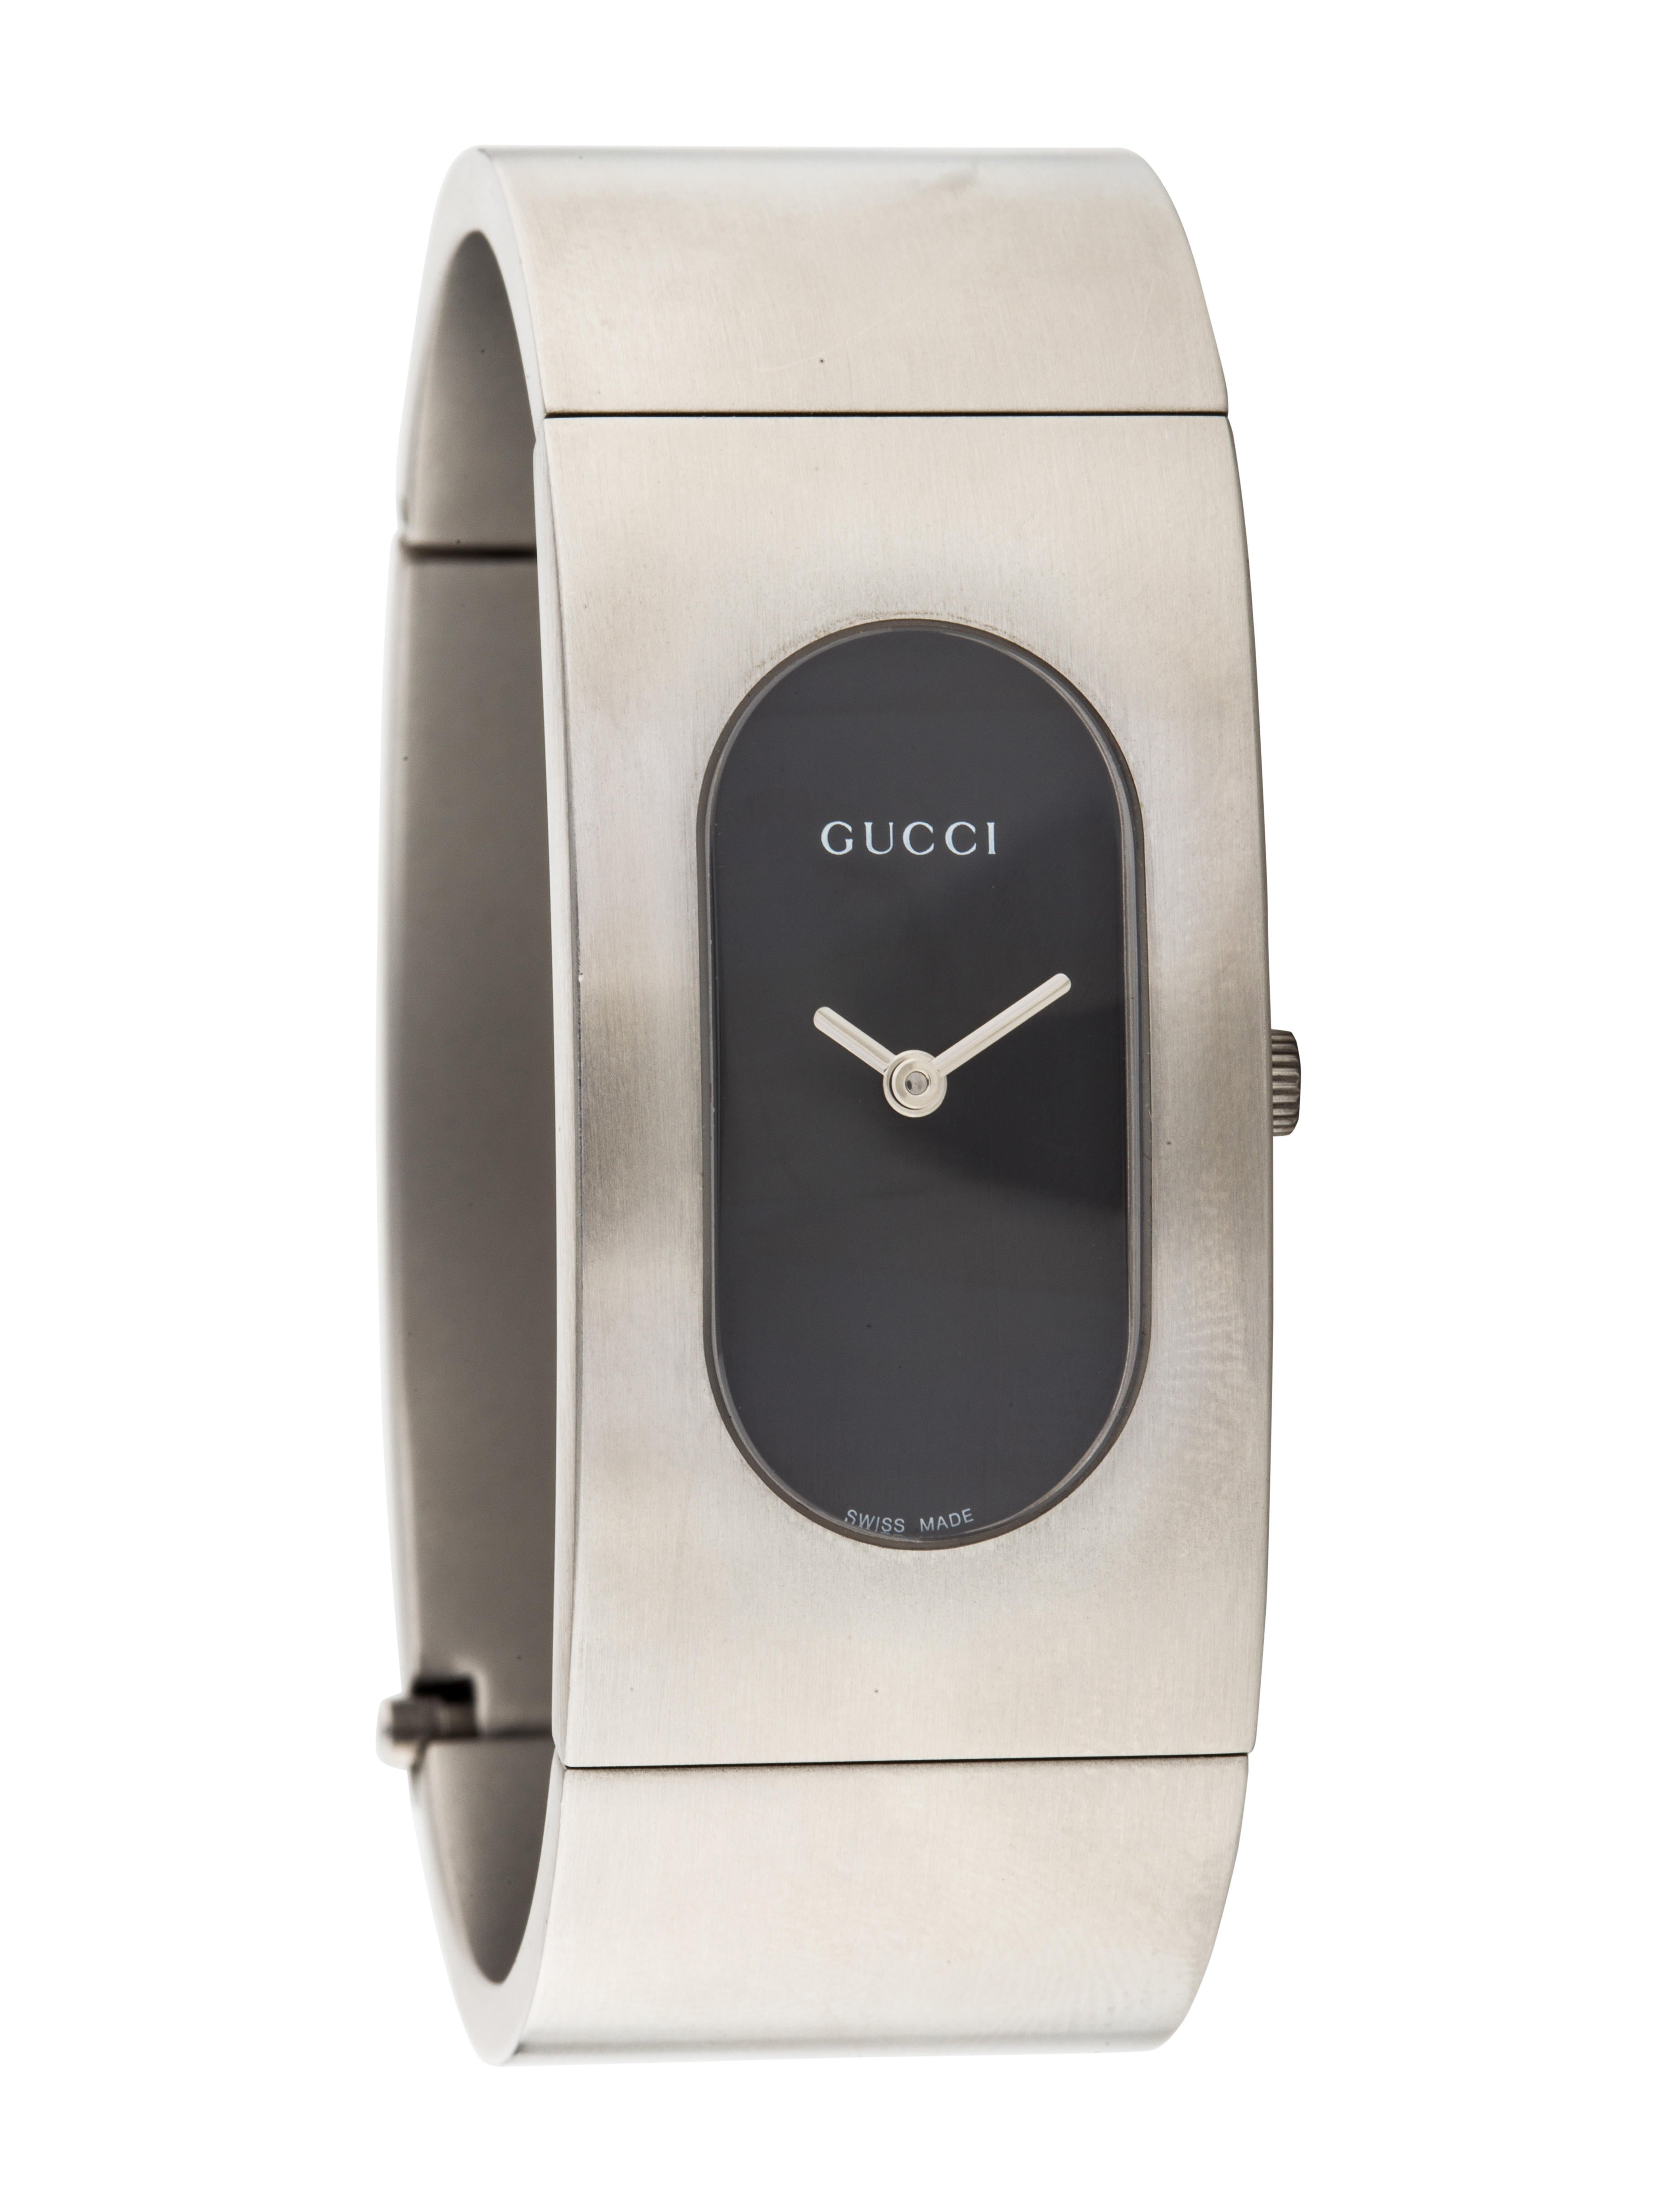 63fb769e111 Gucci 2400 Series Watch - Bracelet - GUC214010